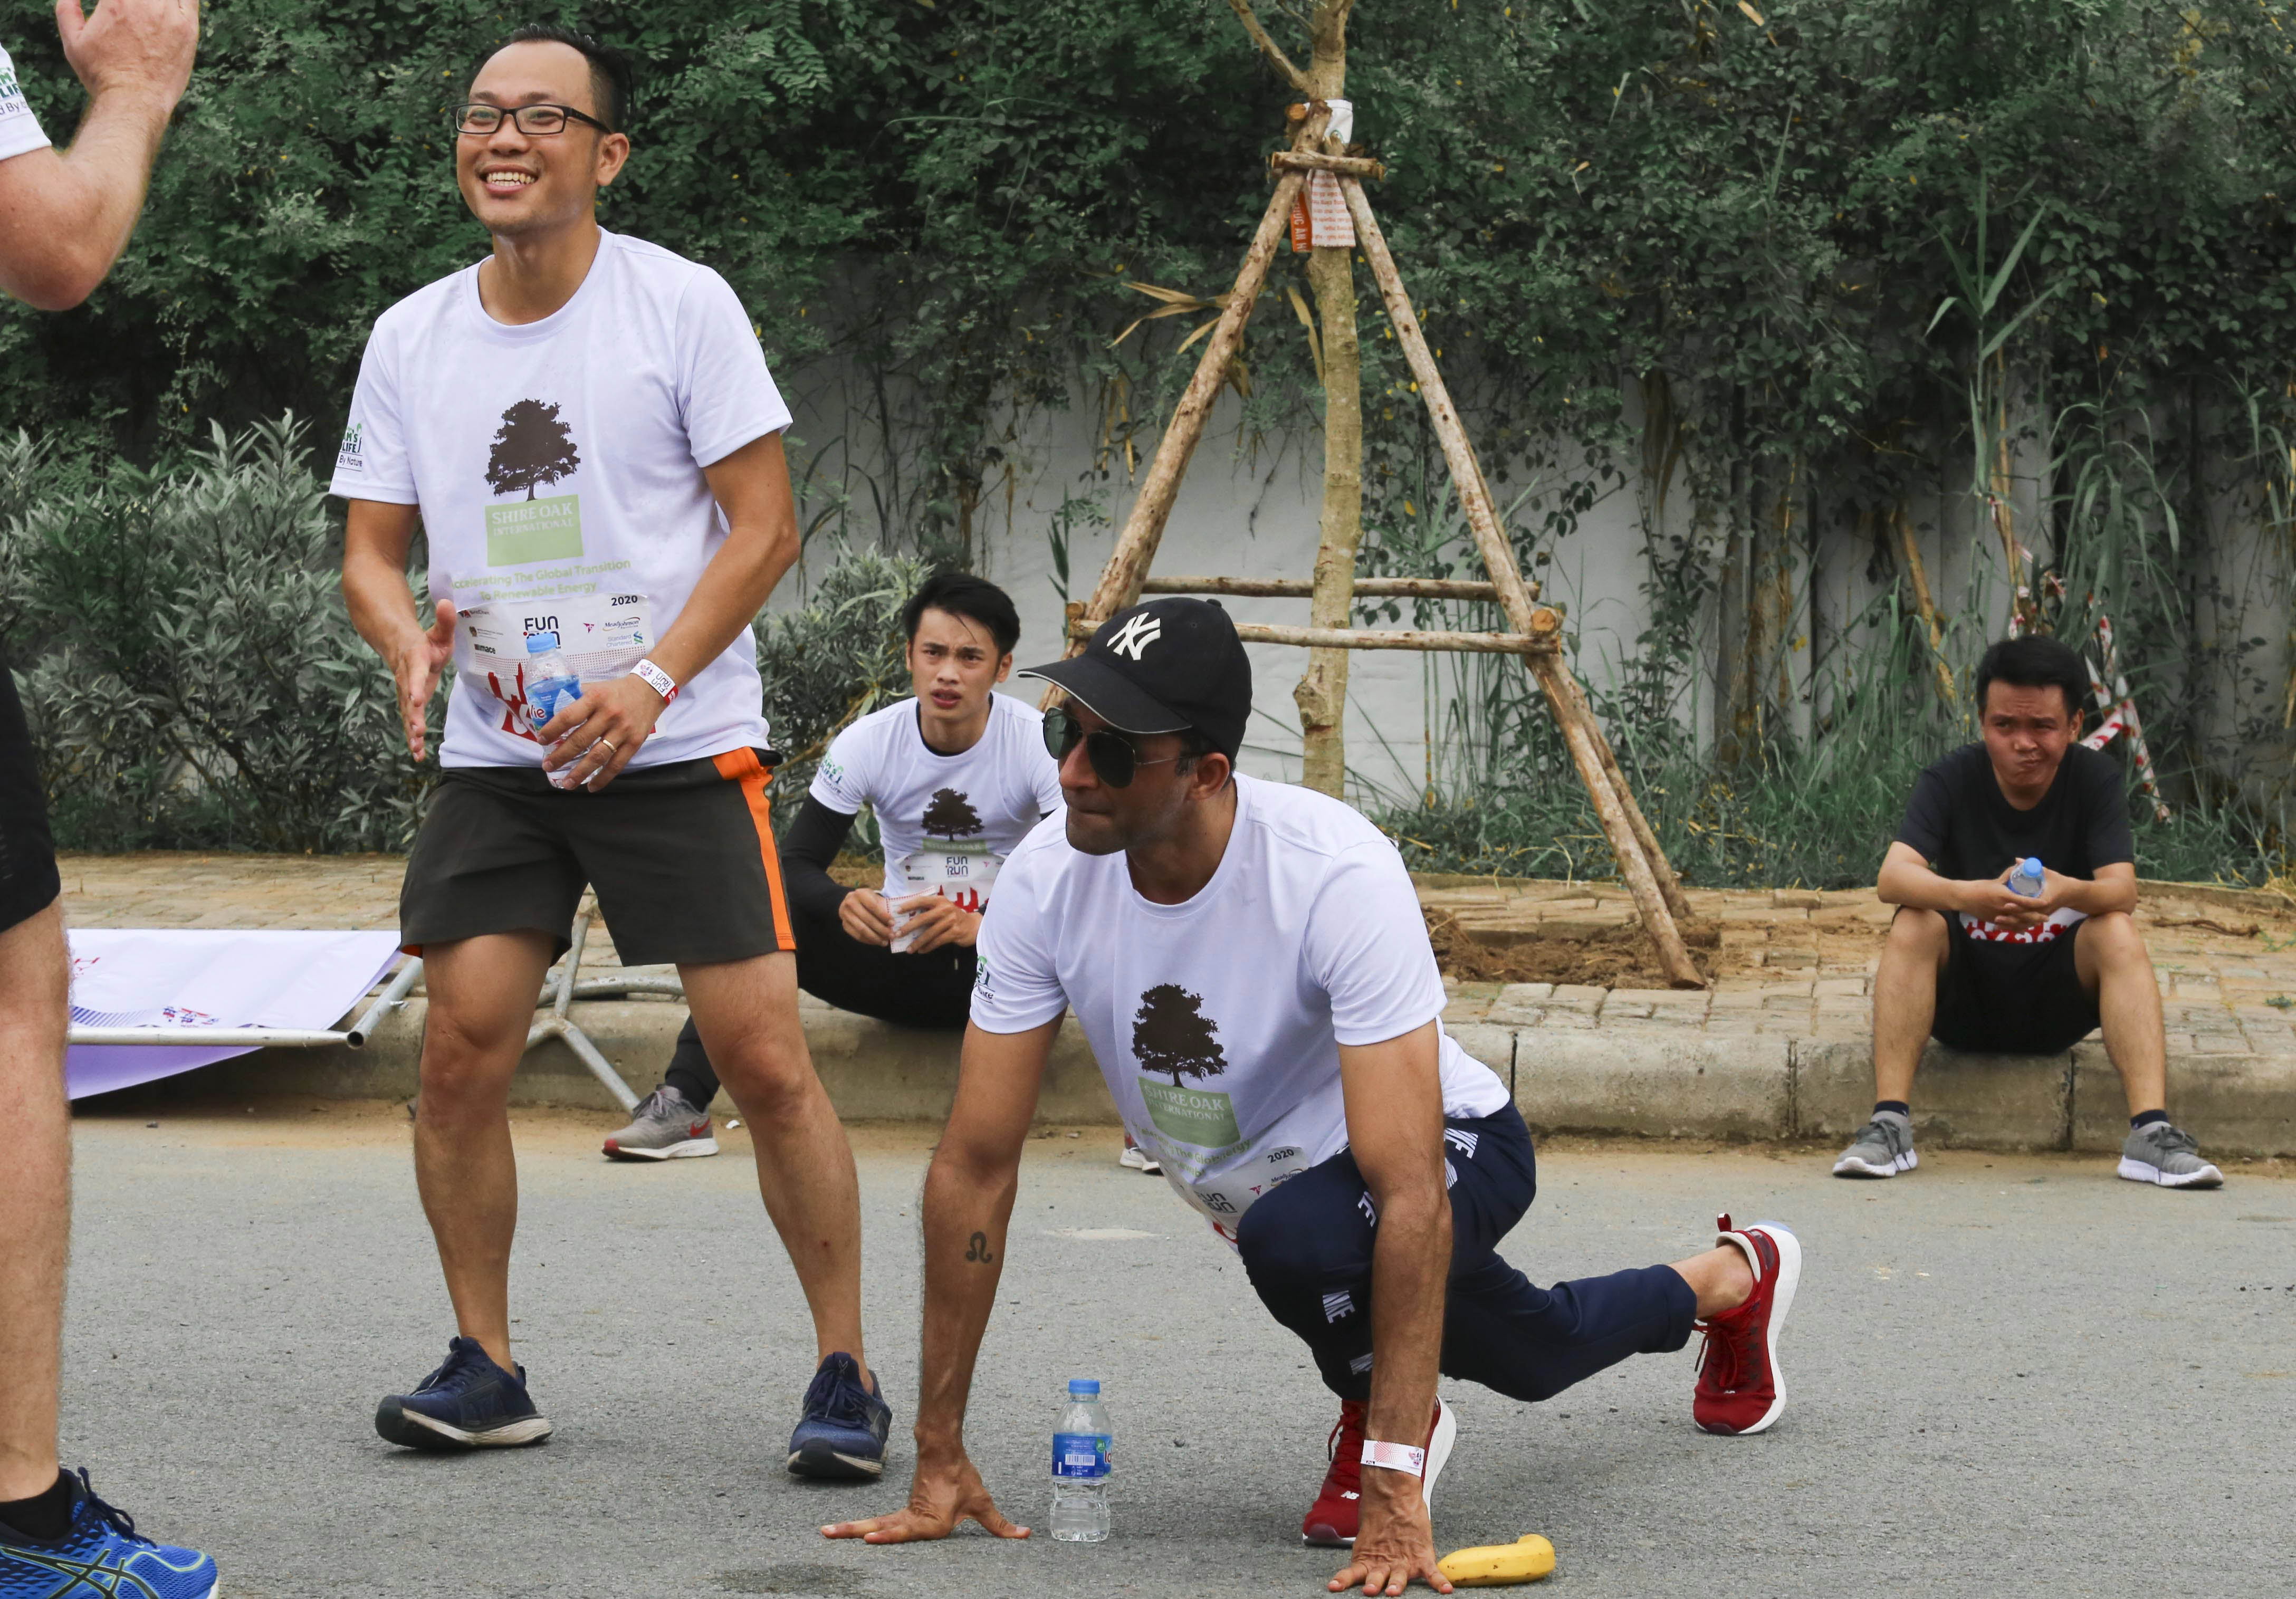 Participants relax their muscles after finished the race at the 20th BritCham Charity Fun Run in Ho Chi Minh City on November 15,2020. Photo: Duc Khue/ Tuoi Tre